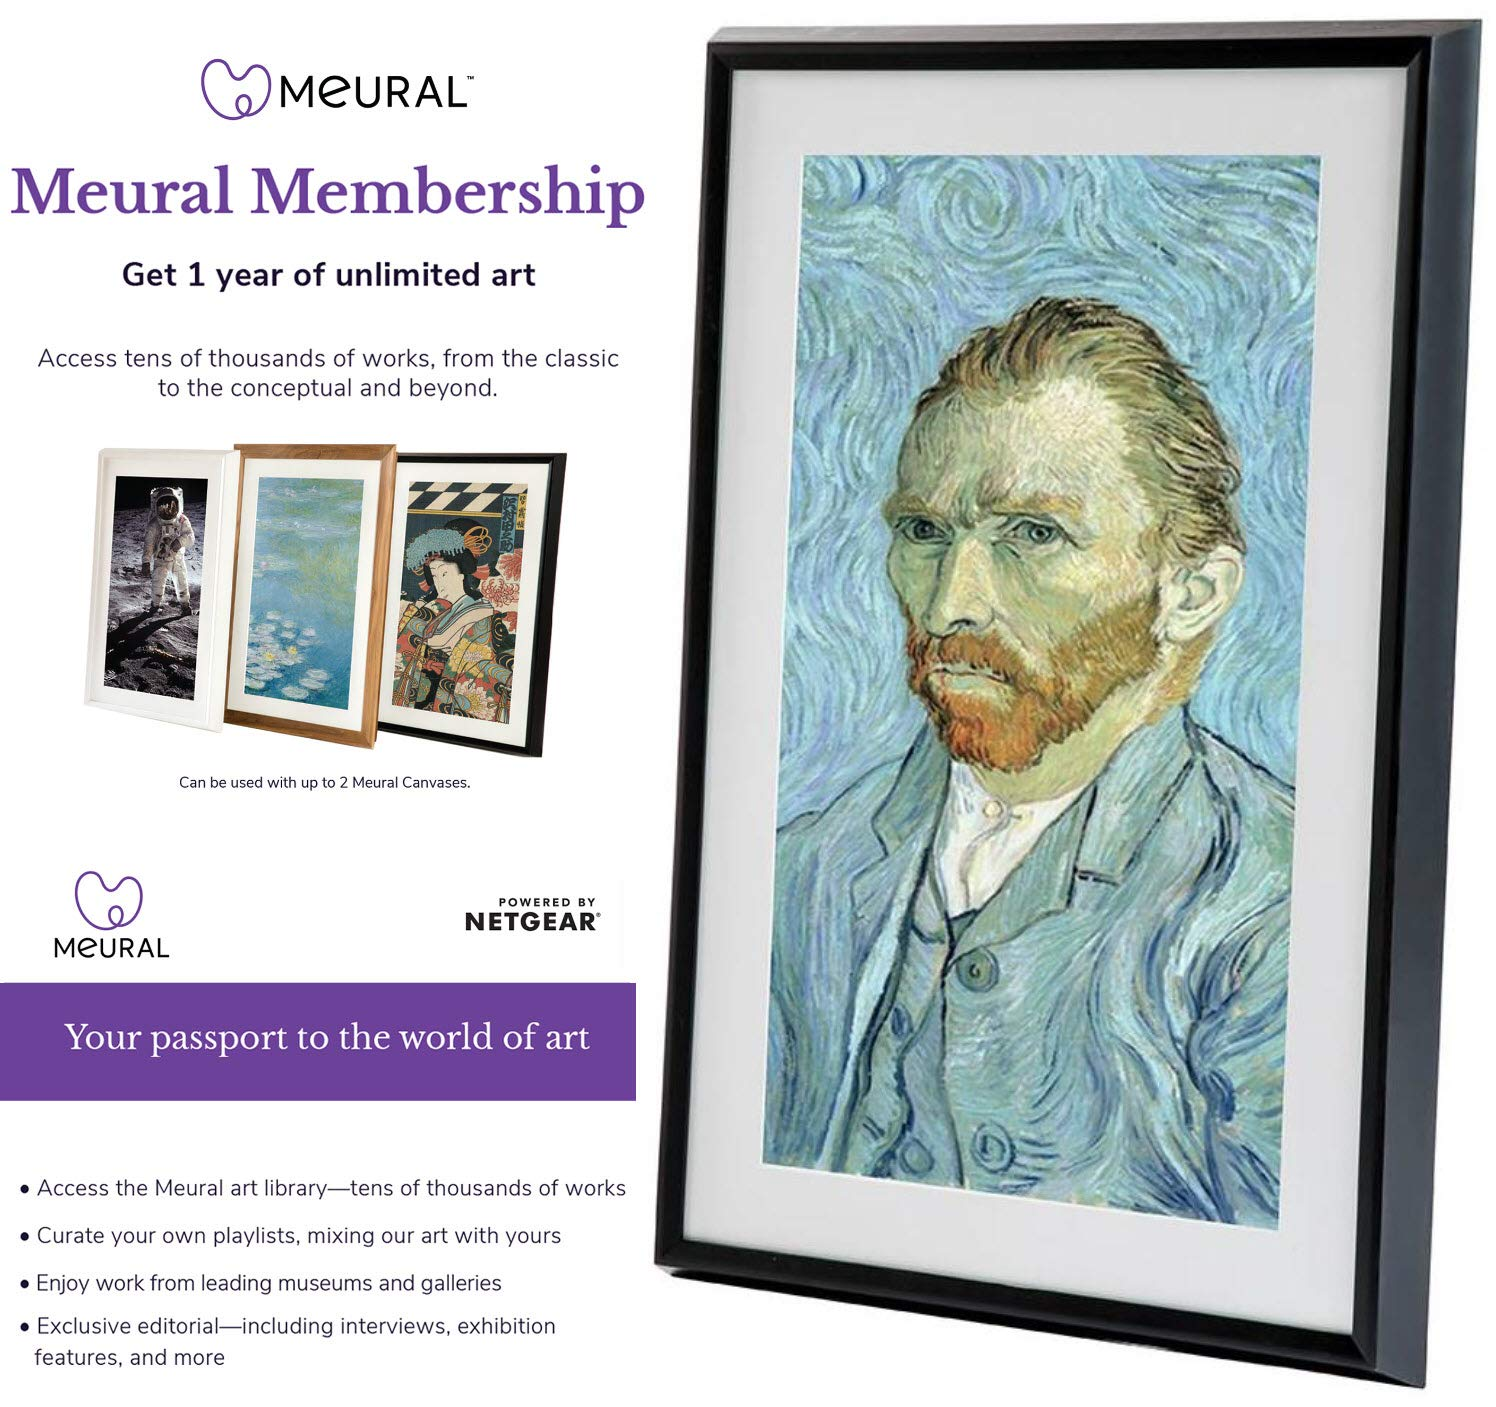 Meural Canvas - Smart Digital Frame | Digital Art Display | Leonora Black | 27 inch HD Display with WiFi | Includes One-Year Membership Subscription to Art Library | Powered by NETGEAR (MC227BL)